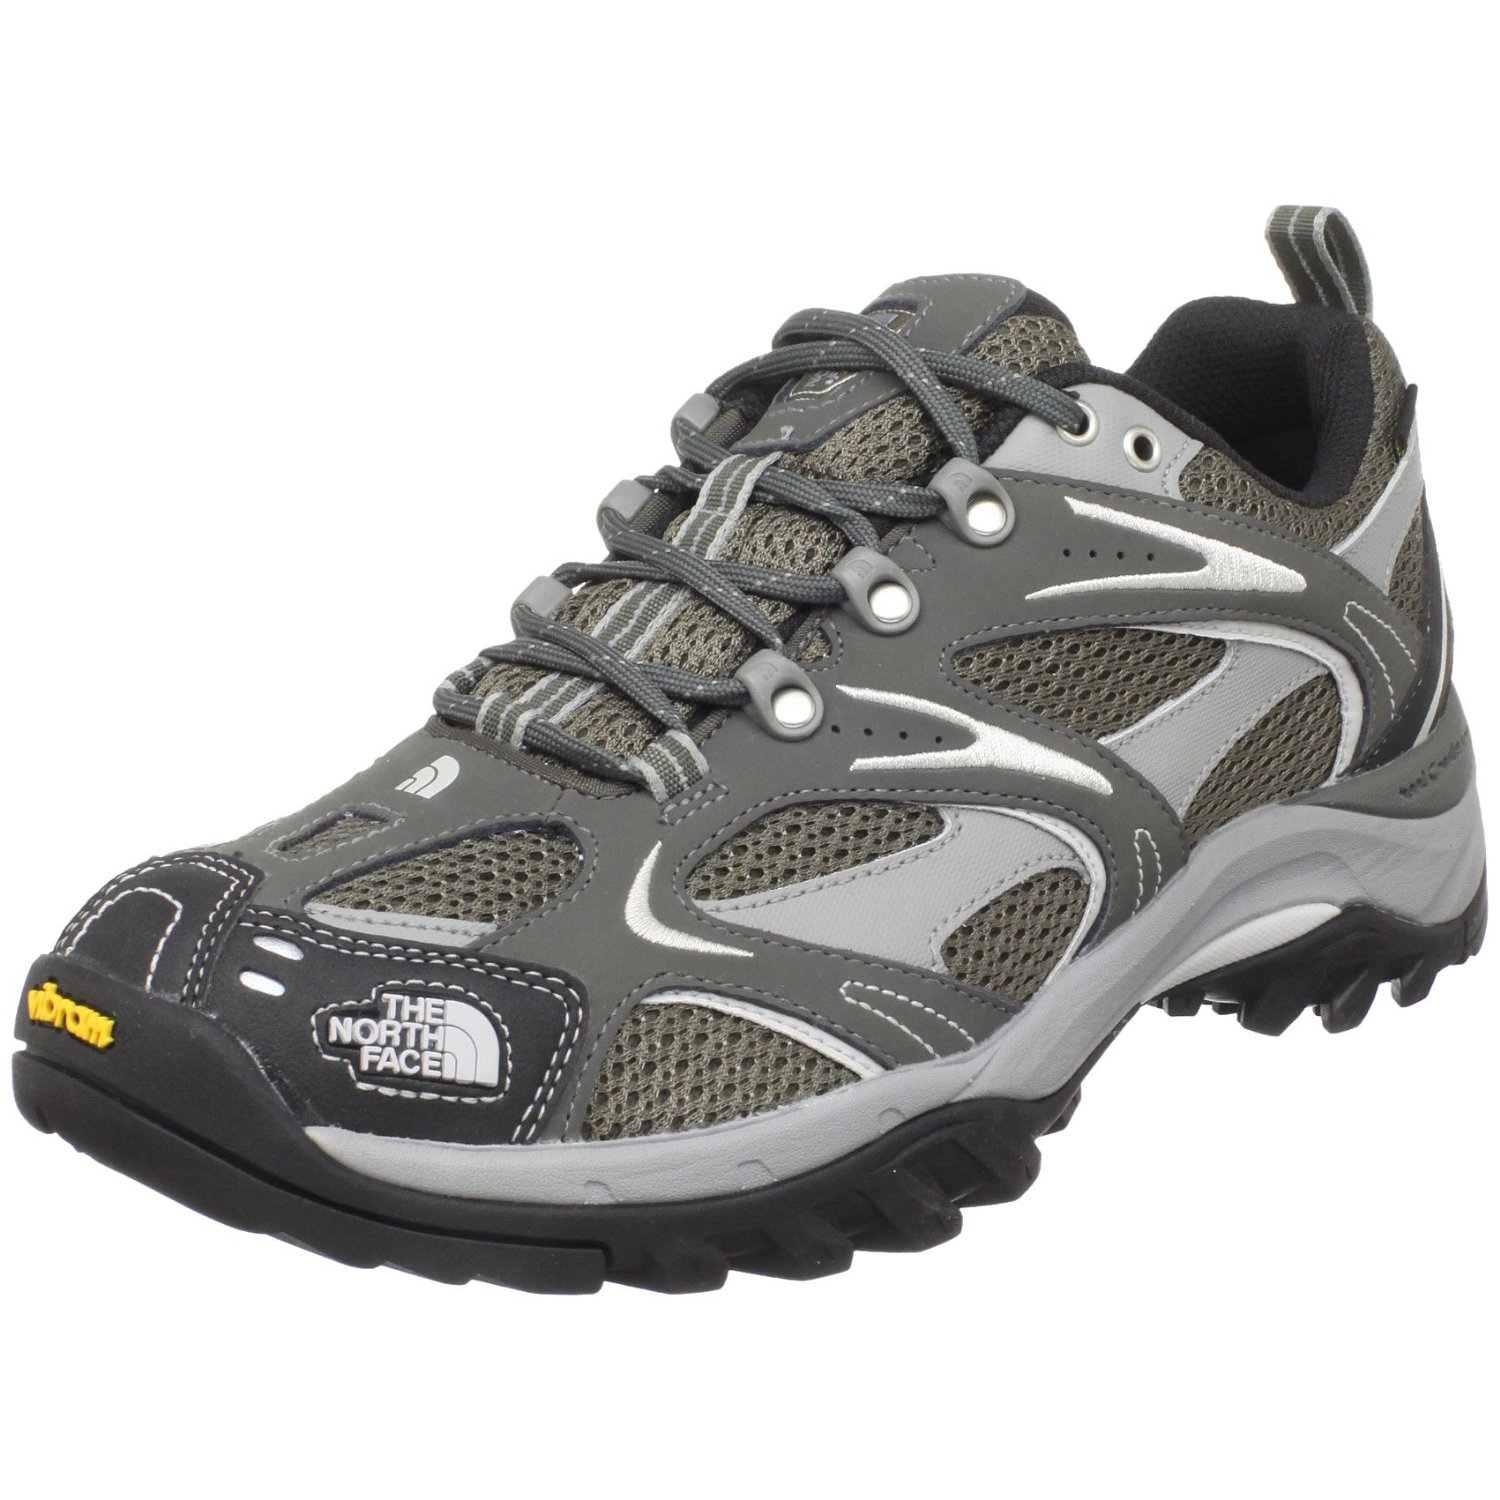 the north face hedgehog gtx xcr iii low sneakers in gray. Black Bedroom Furniture Sets. Home Design Ideas